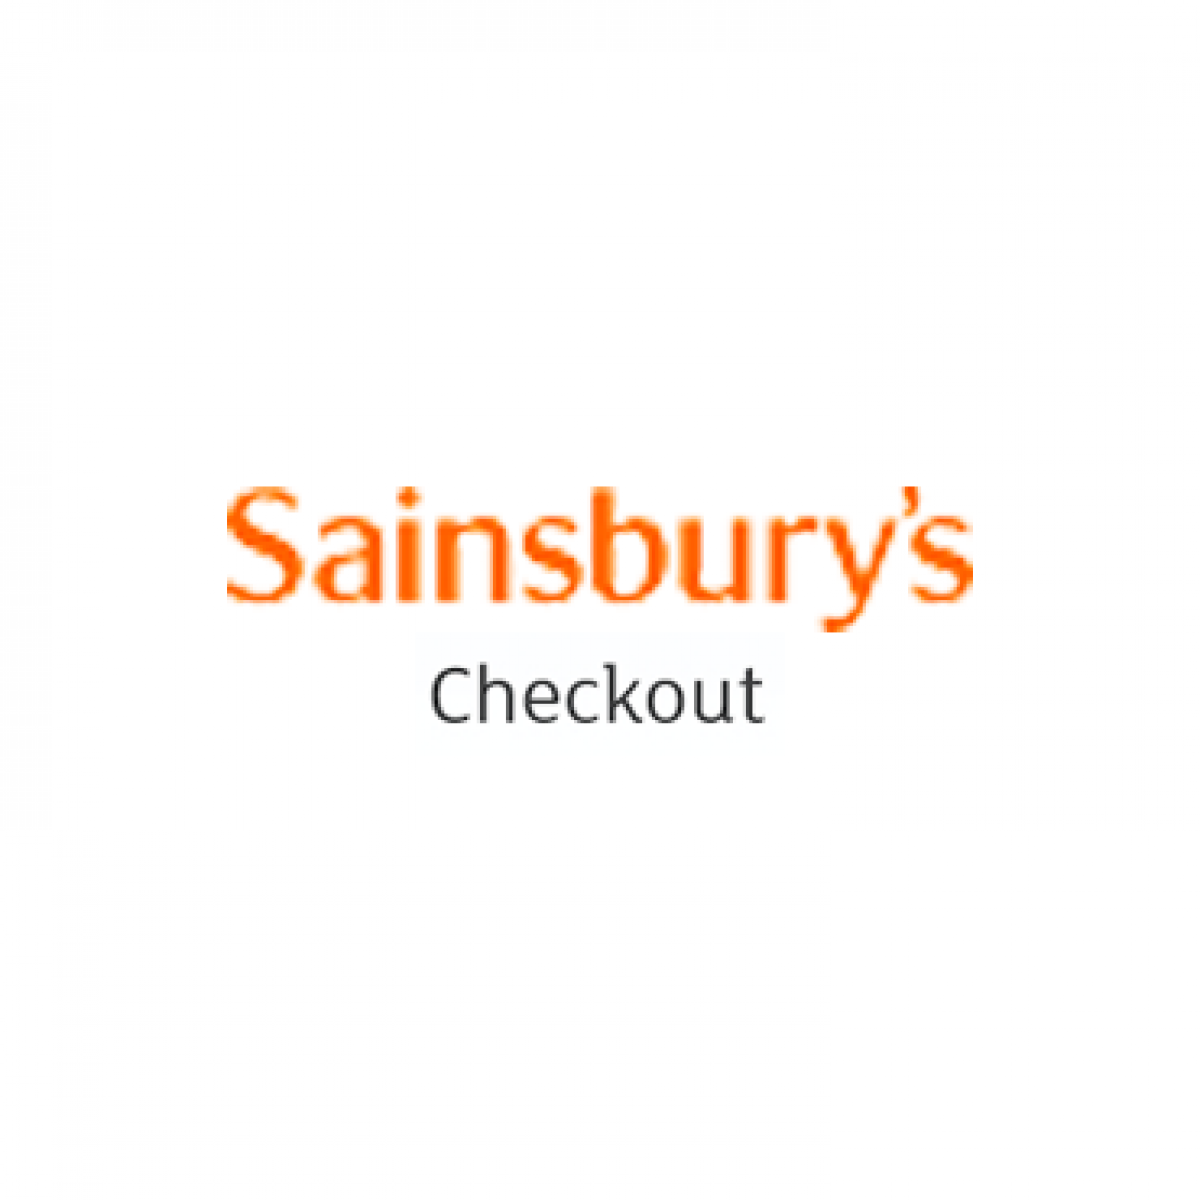 Sainsbury's Groceries Checkout